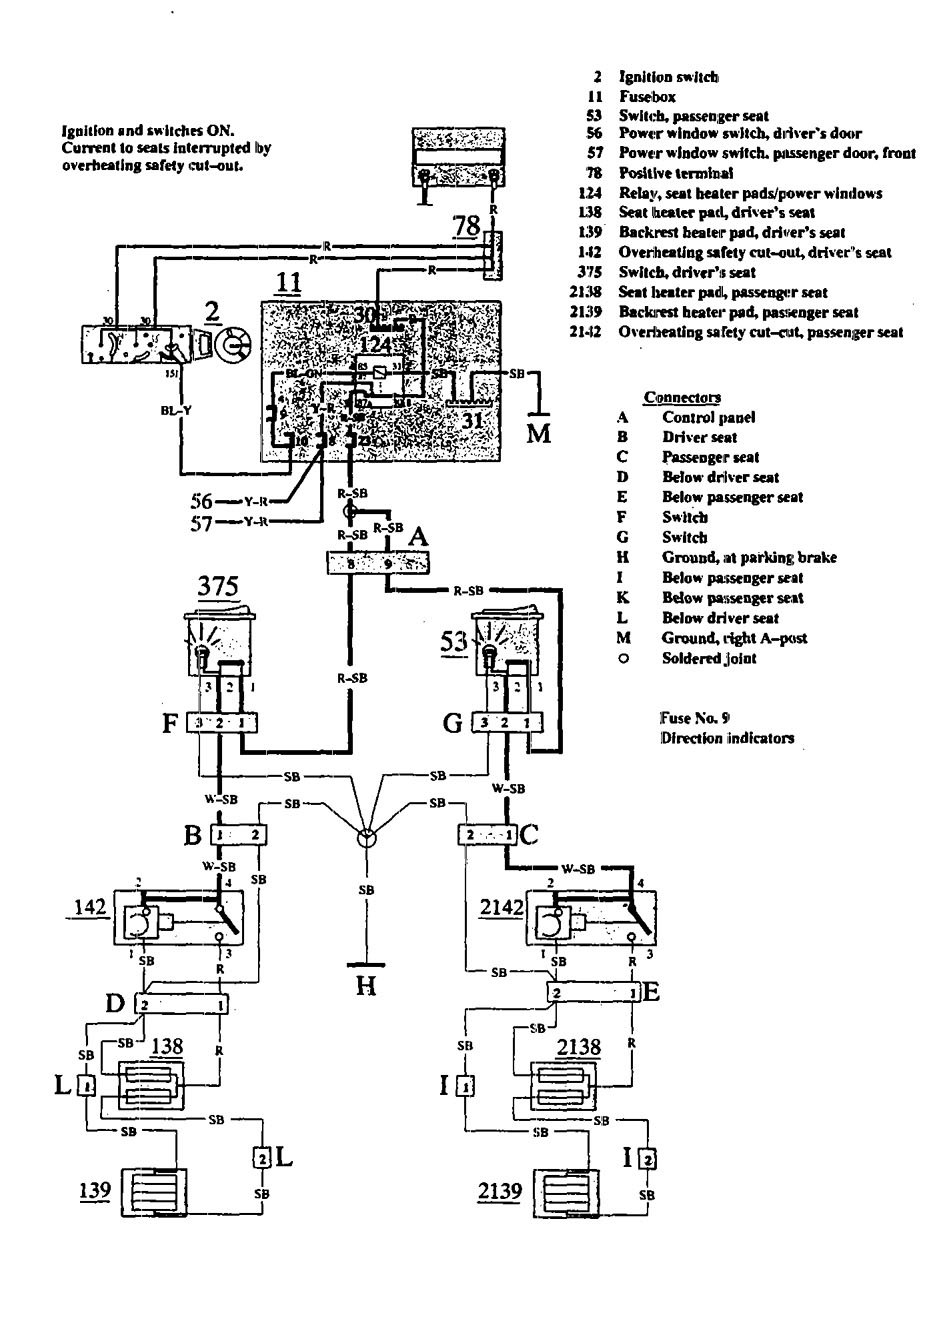 [DIAGRAM] Bmw X1 E84 Wiring Diagram FULL Version HD